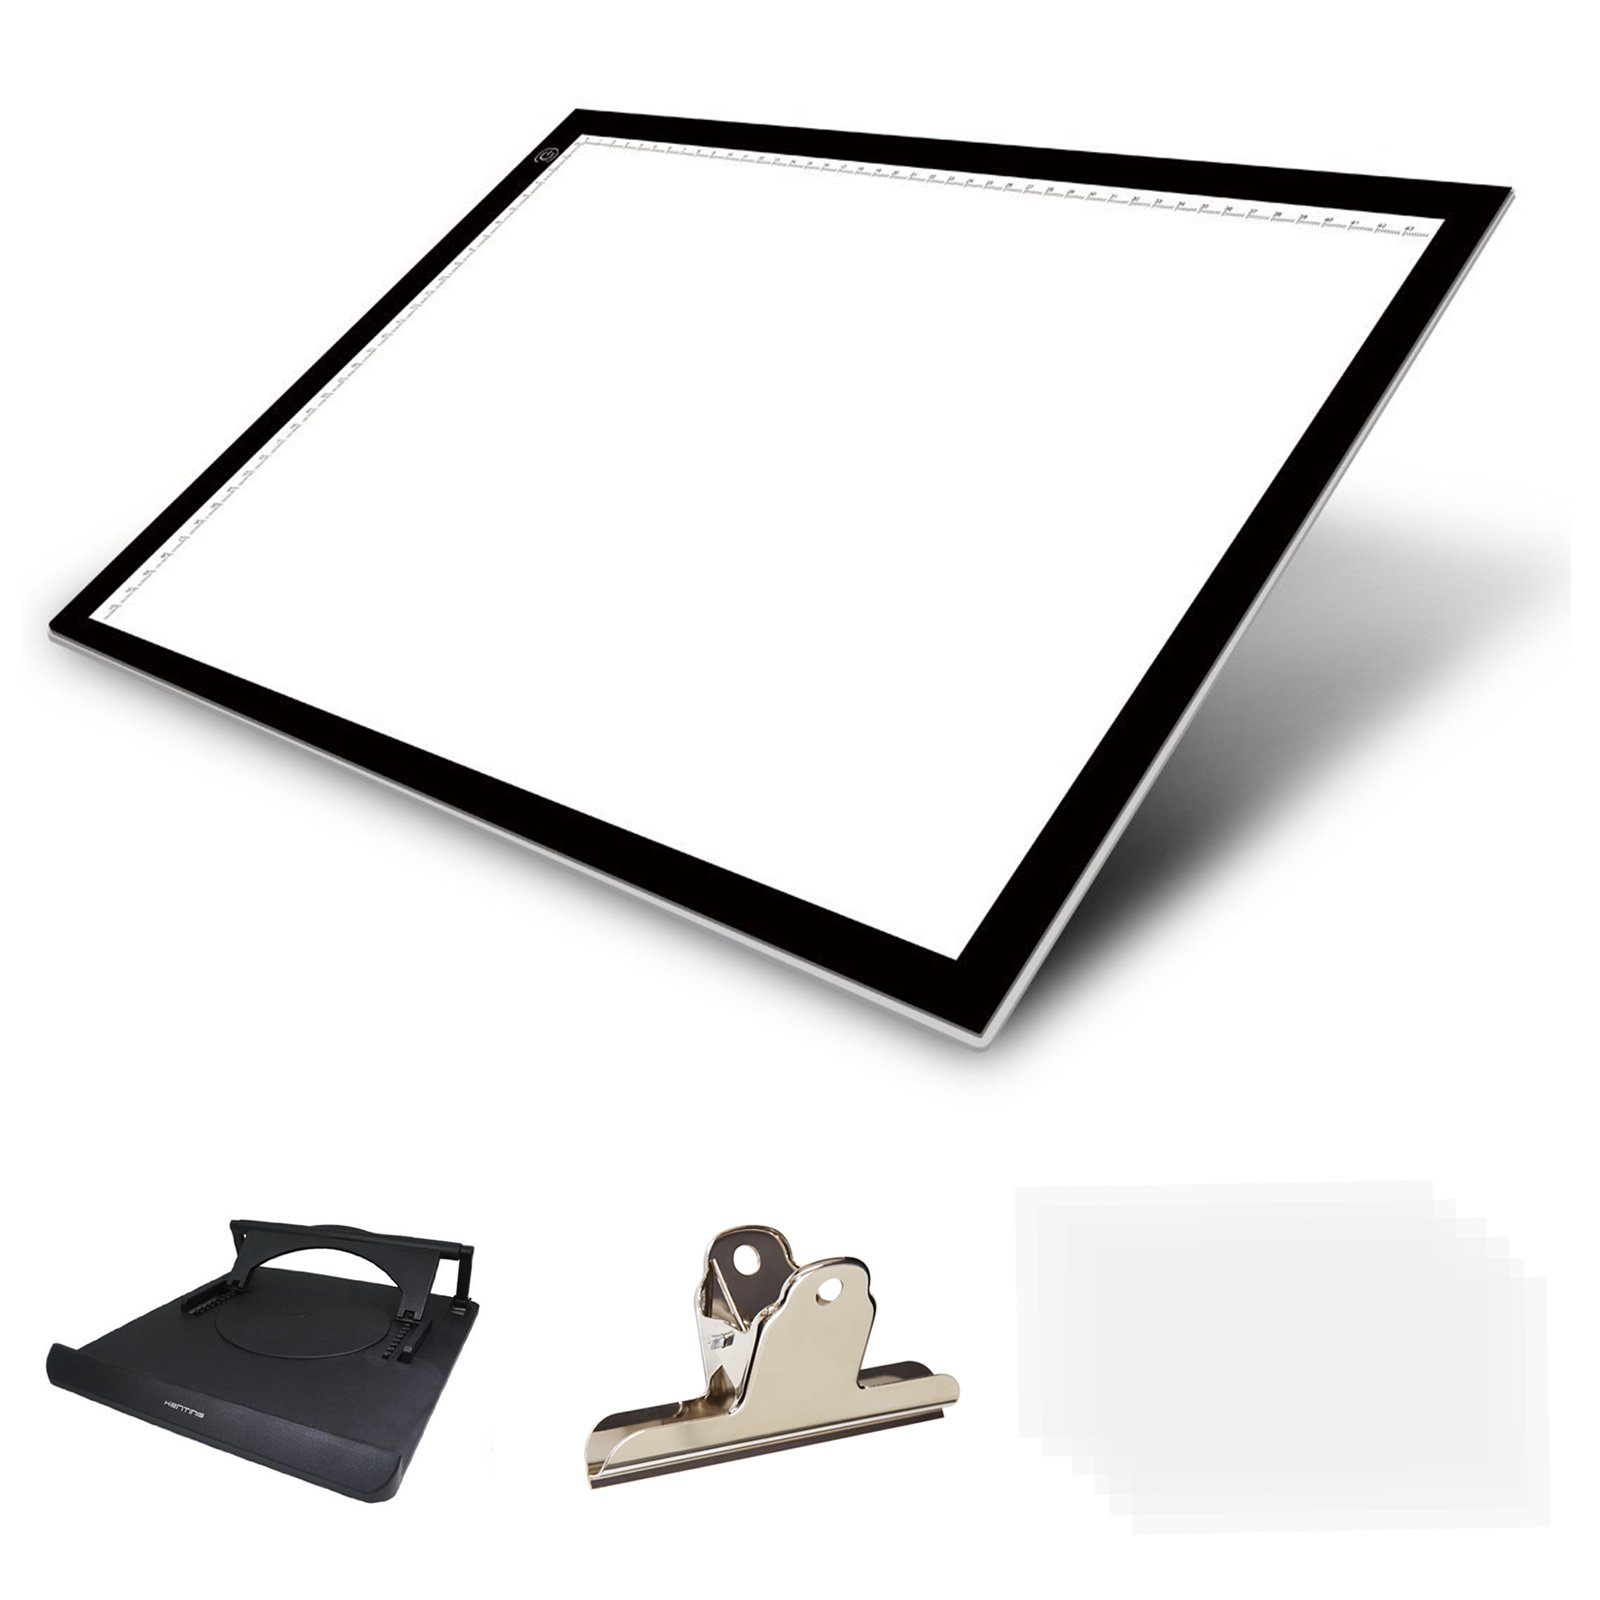 Huion Thin light PAD 5mm LED Drawing Copy Tracing Stencil Board Table Tattoo Pad with Holder, Drawing Board Clip and 6 Piece racing Paper (A3H Holder)